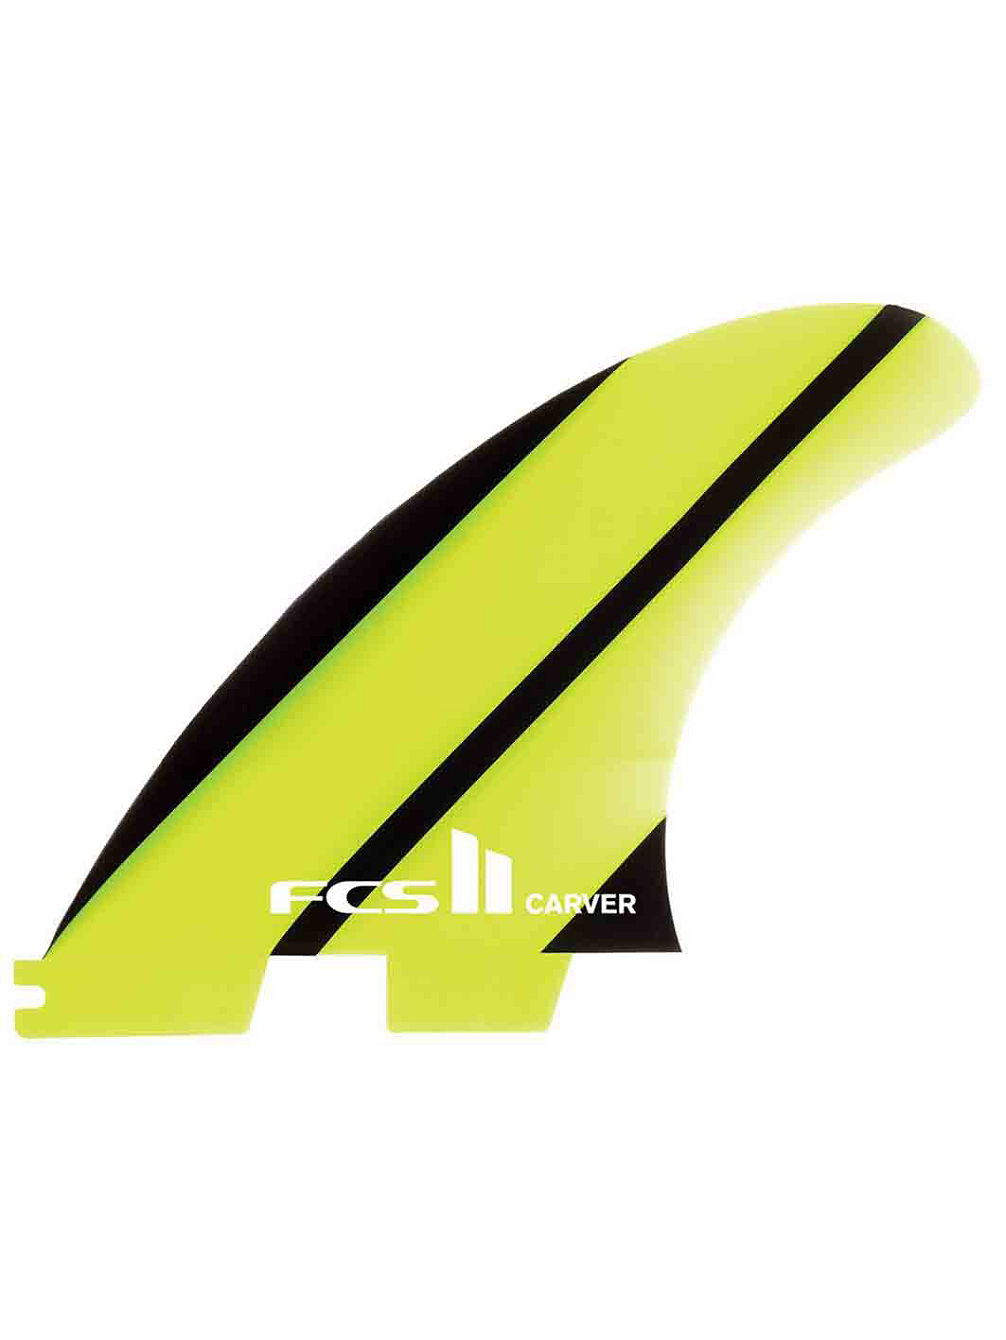 2 Carver Glass S Quad Rear Side Fin